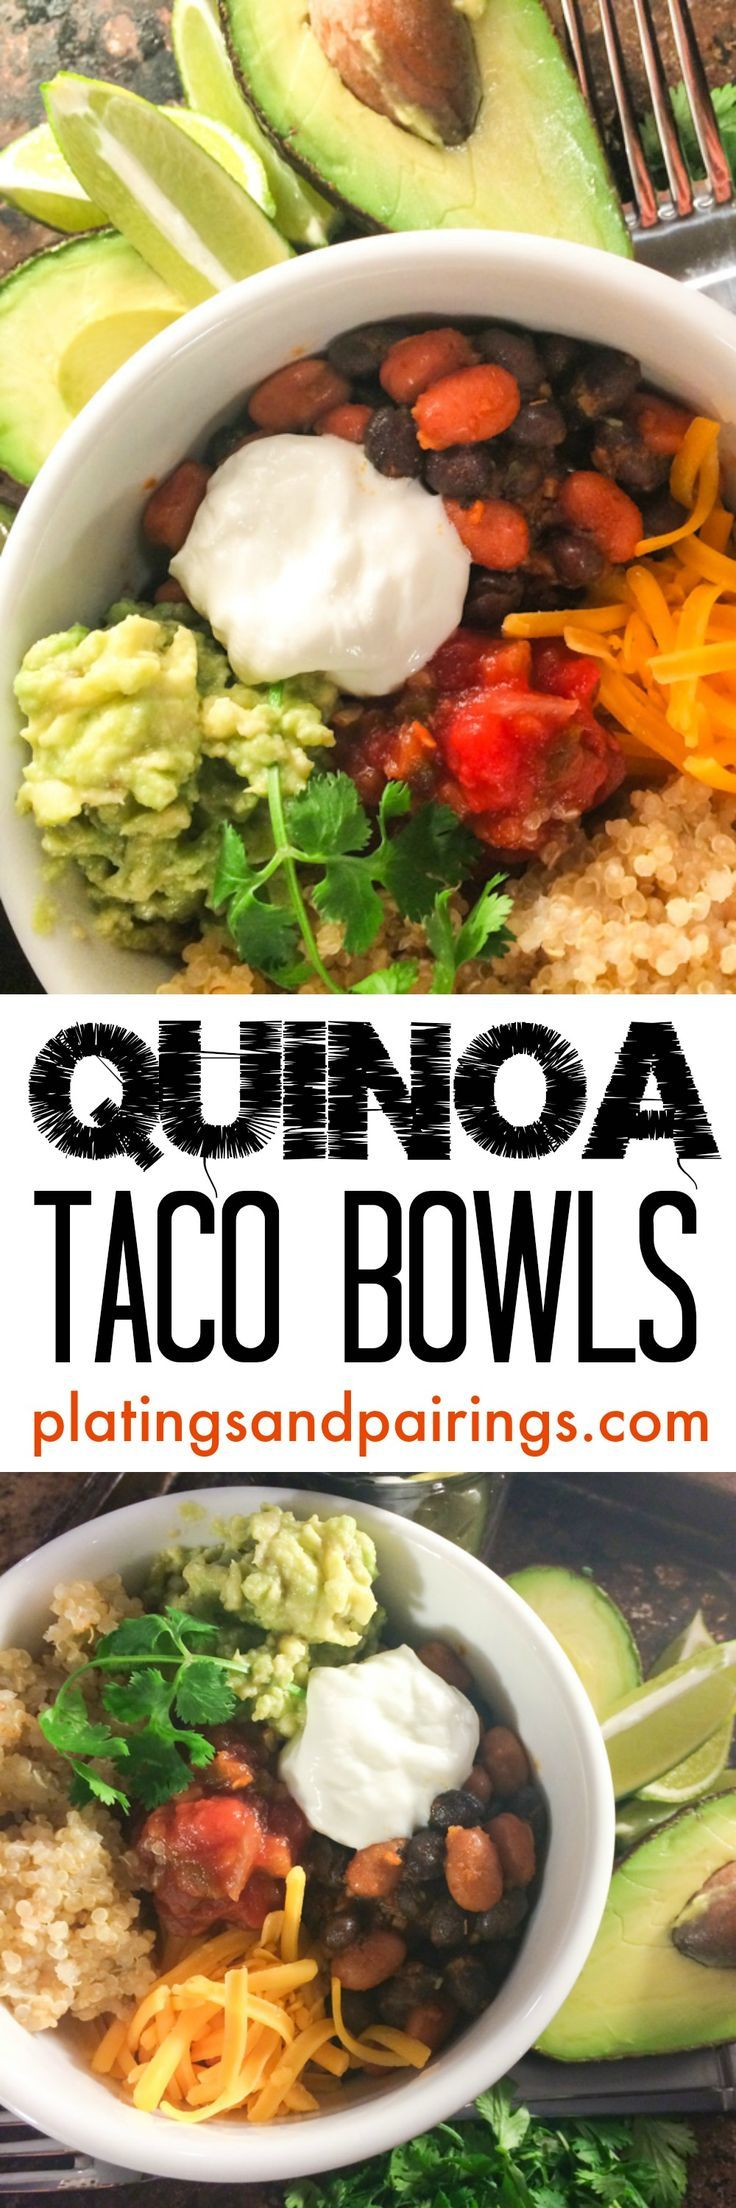 Healthy Quinoa Taco Bowls - Customize with your favorite toppings!